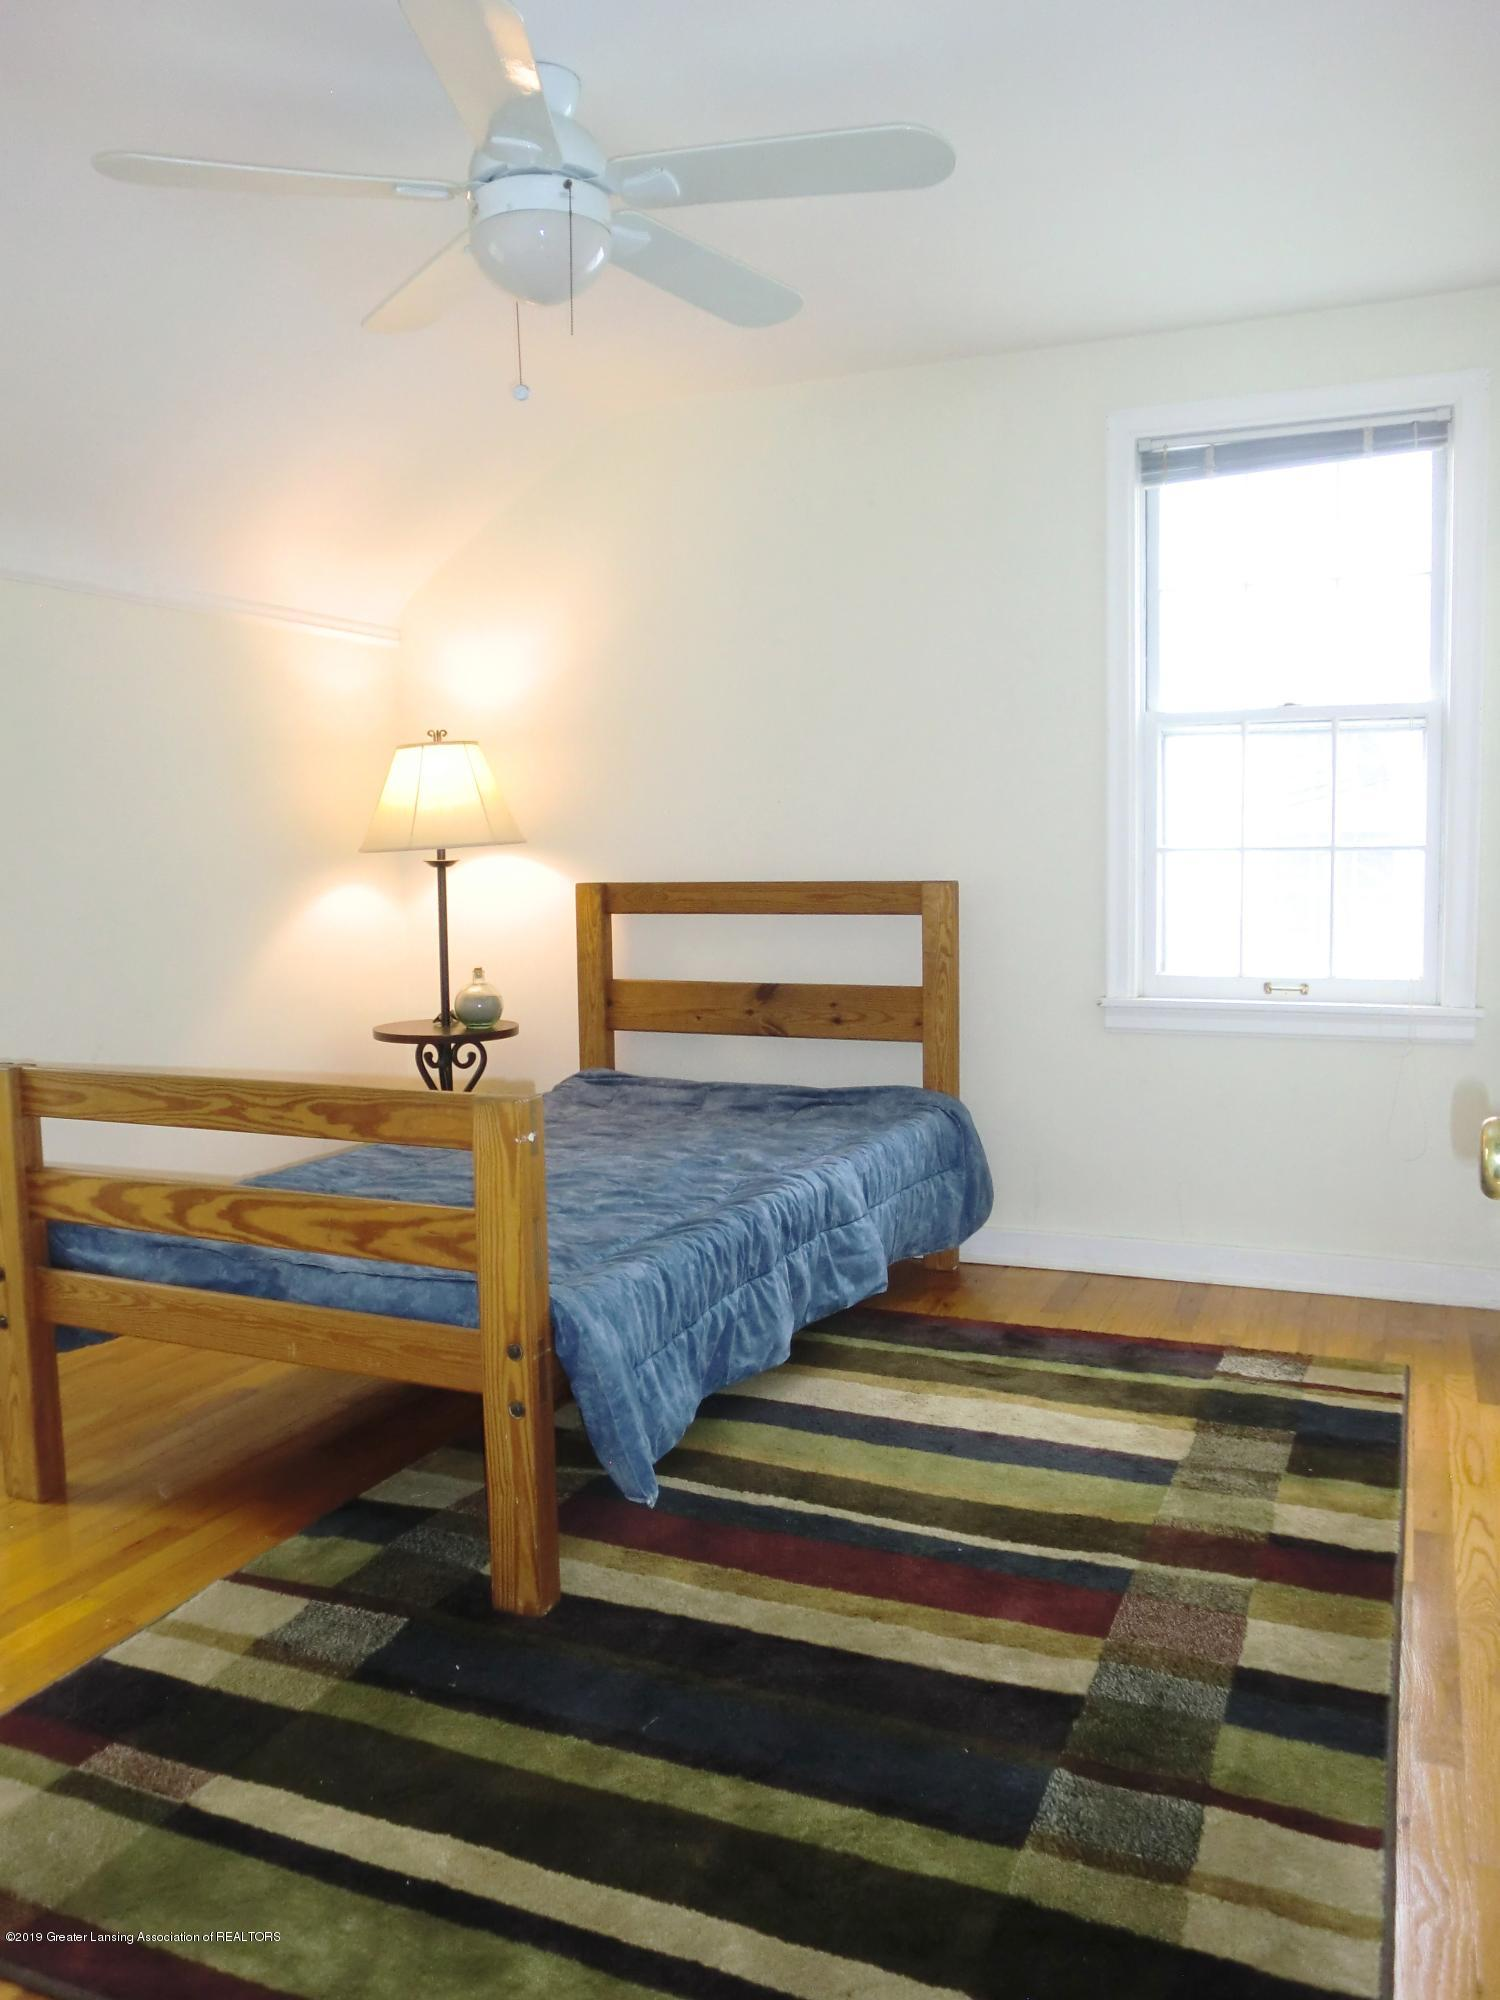 704 Beech St - Bedroom - 18